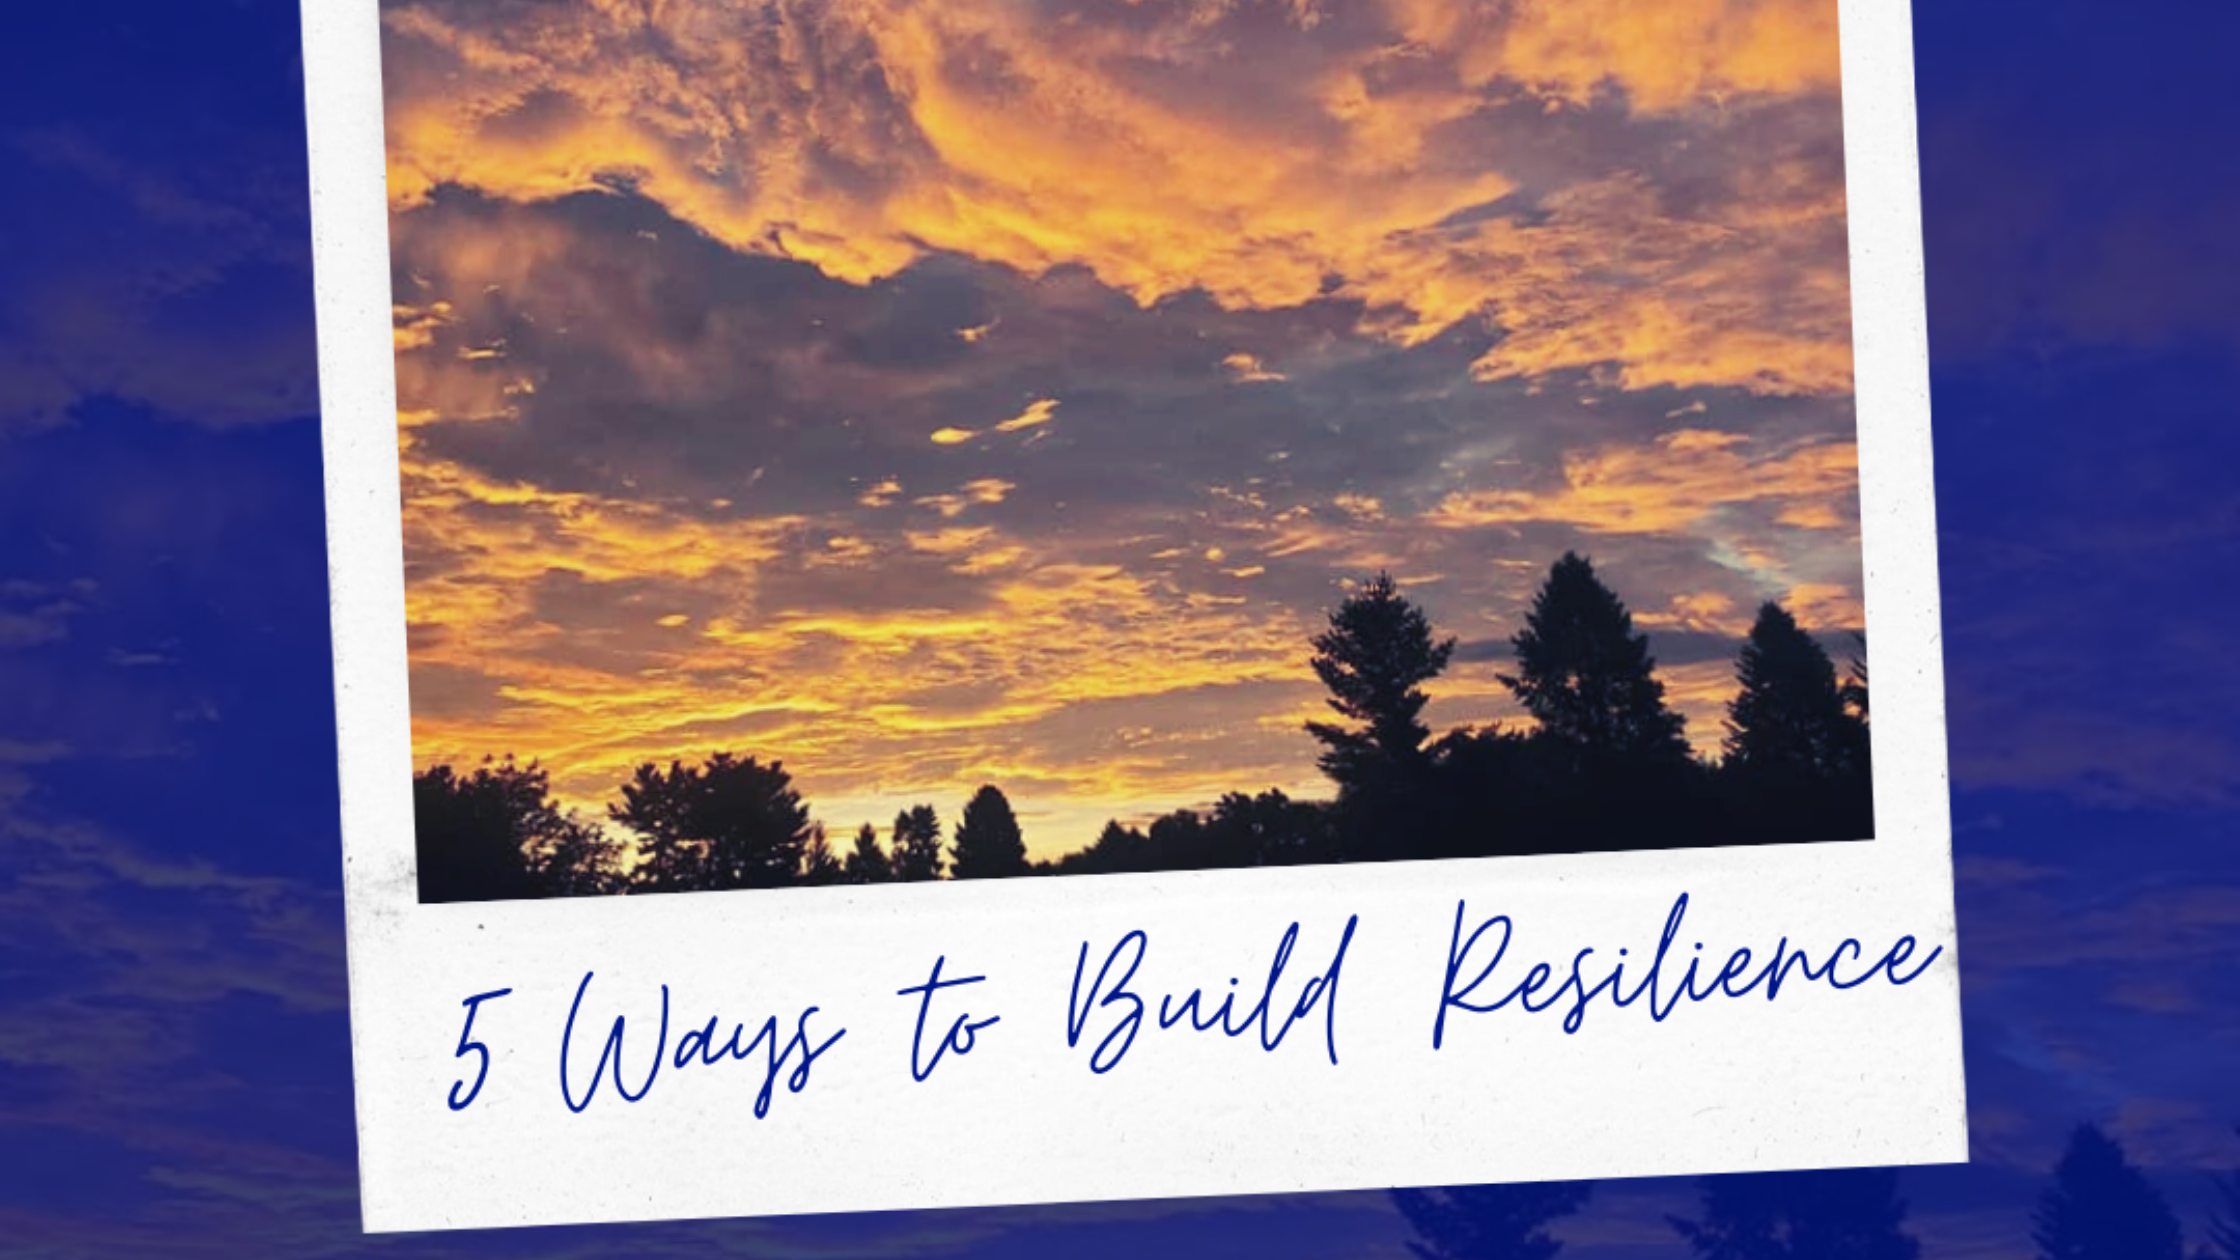 RDI - 5 Ways to Build Resilience